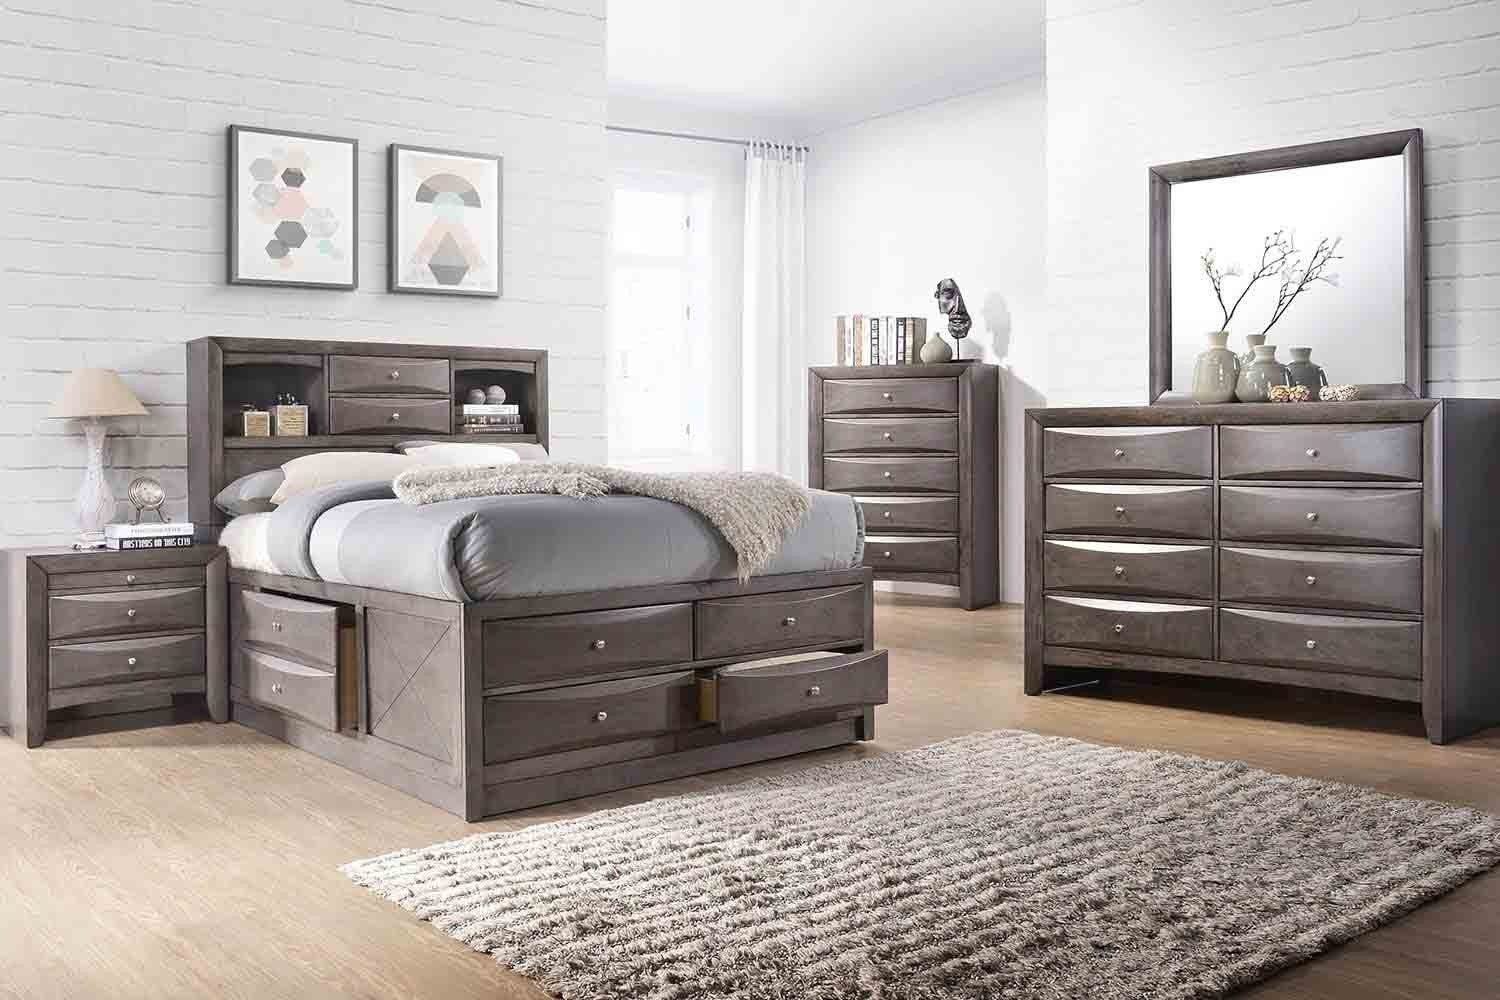 Best Remi Queen Storage Bed Save Mor Online And In Store With Pictures